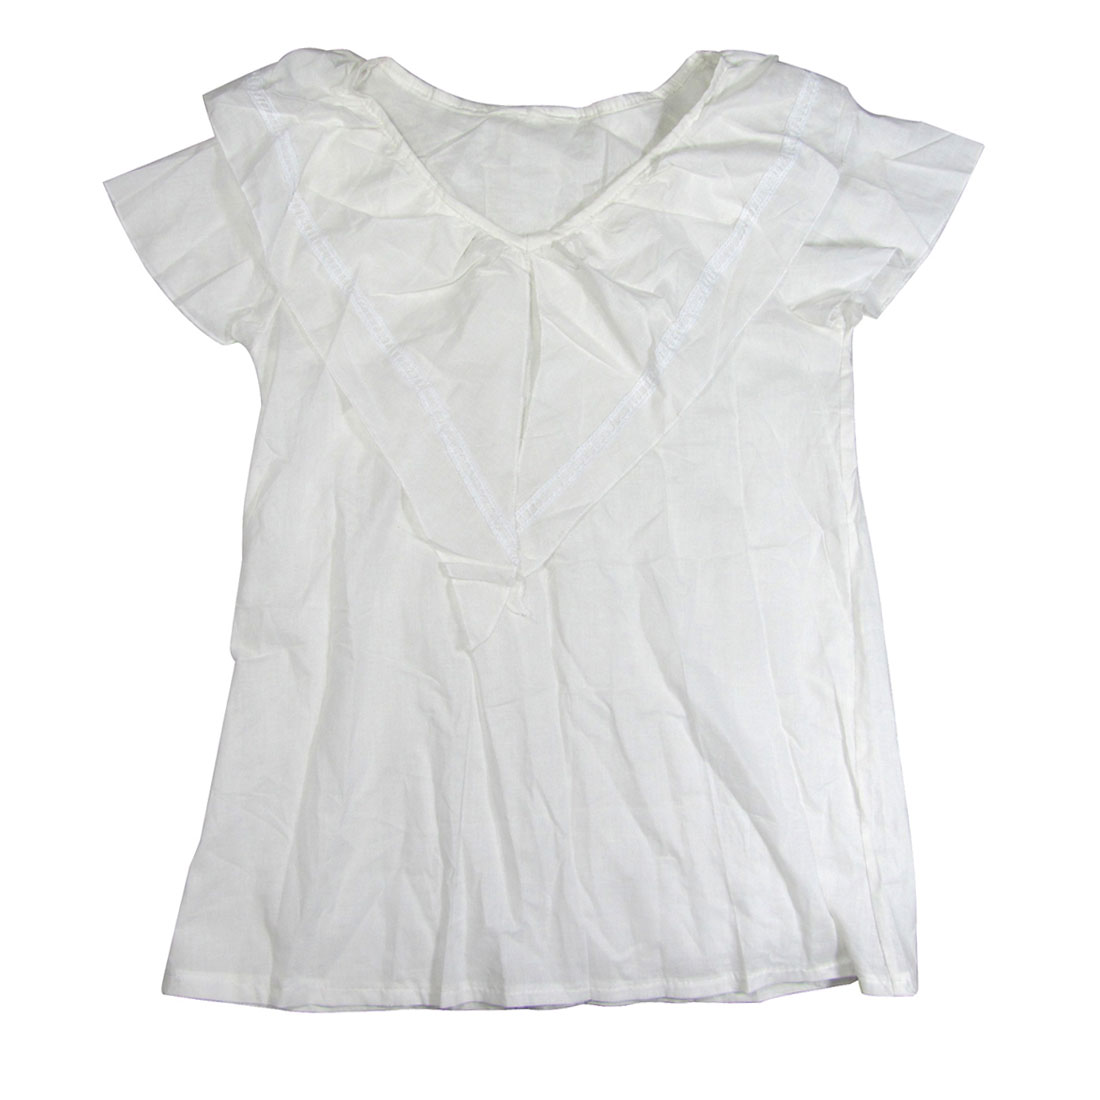 Ladies Size XS White Cap Sleeve Blouse Ruffle Neck Top